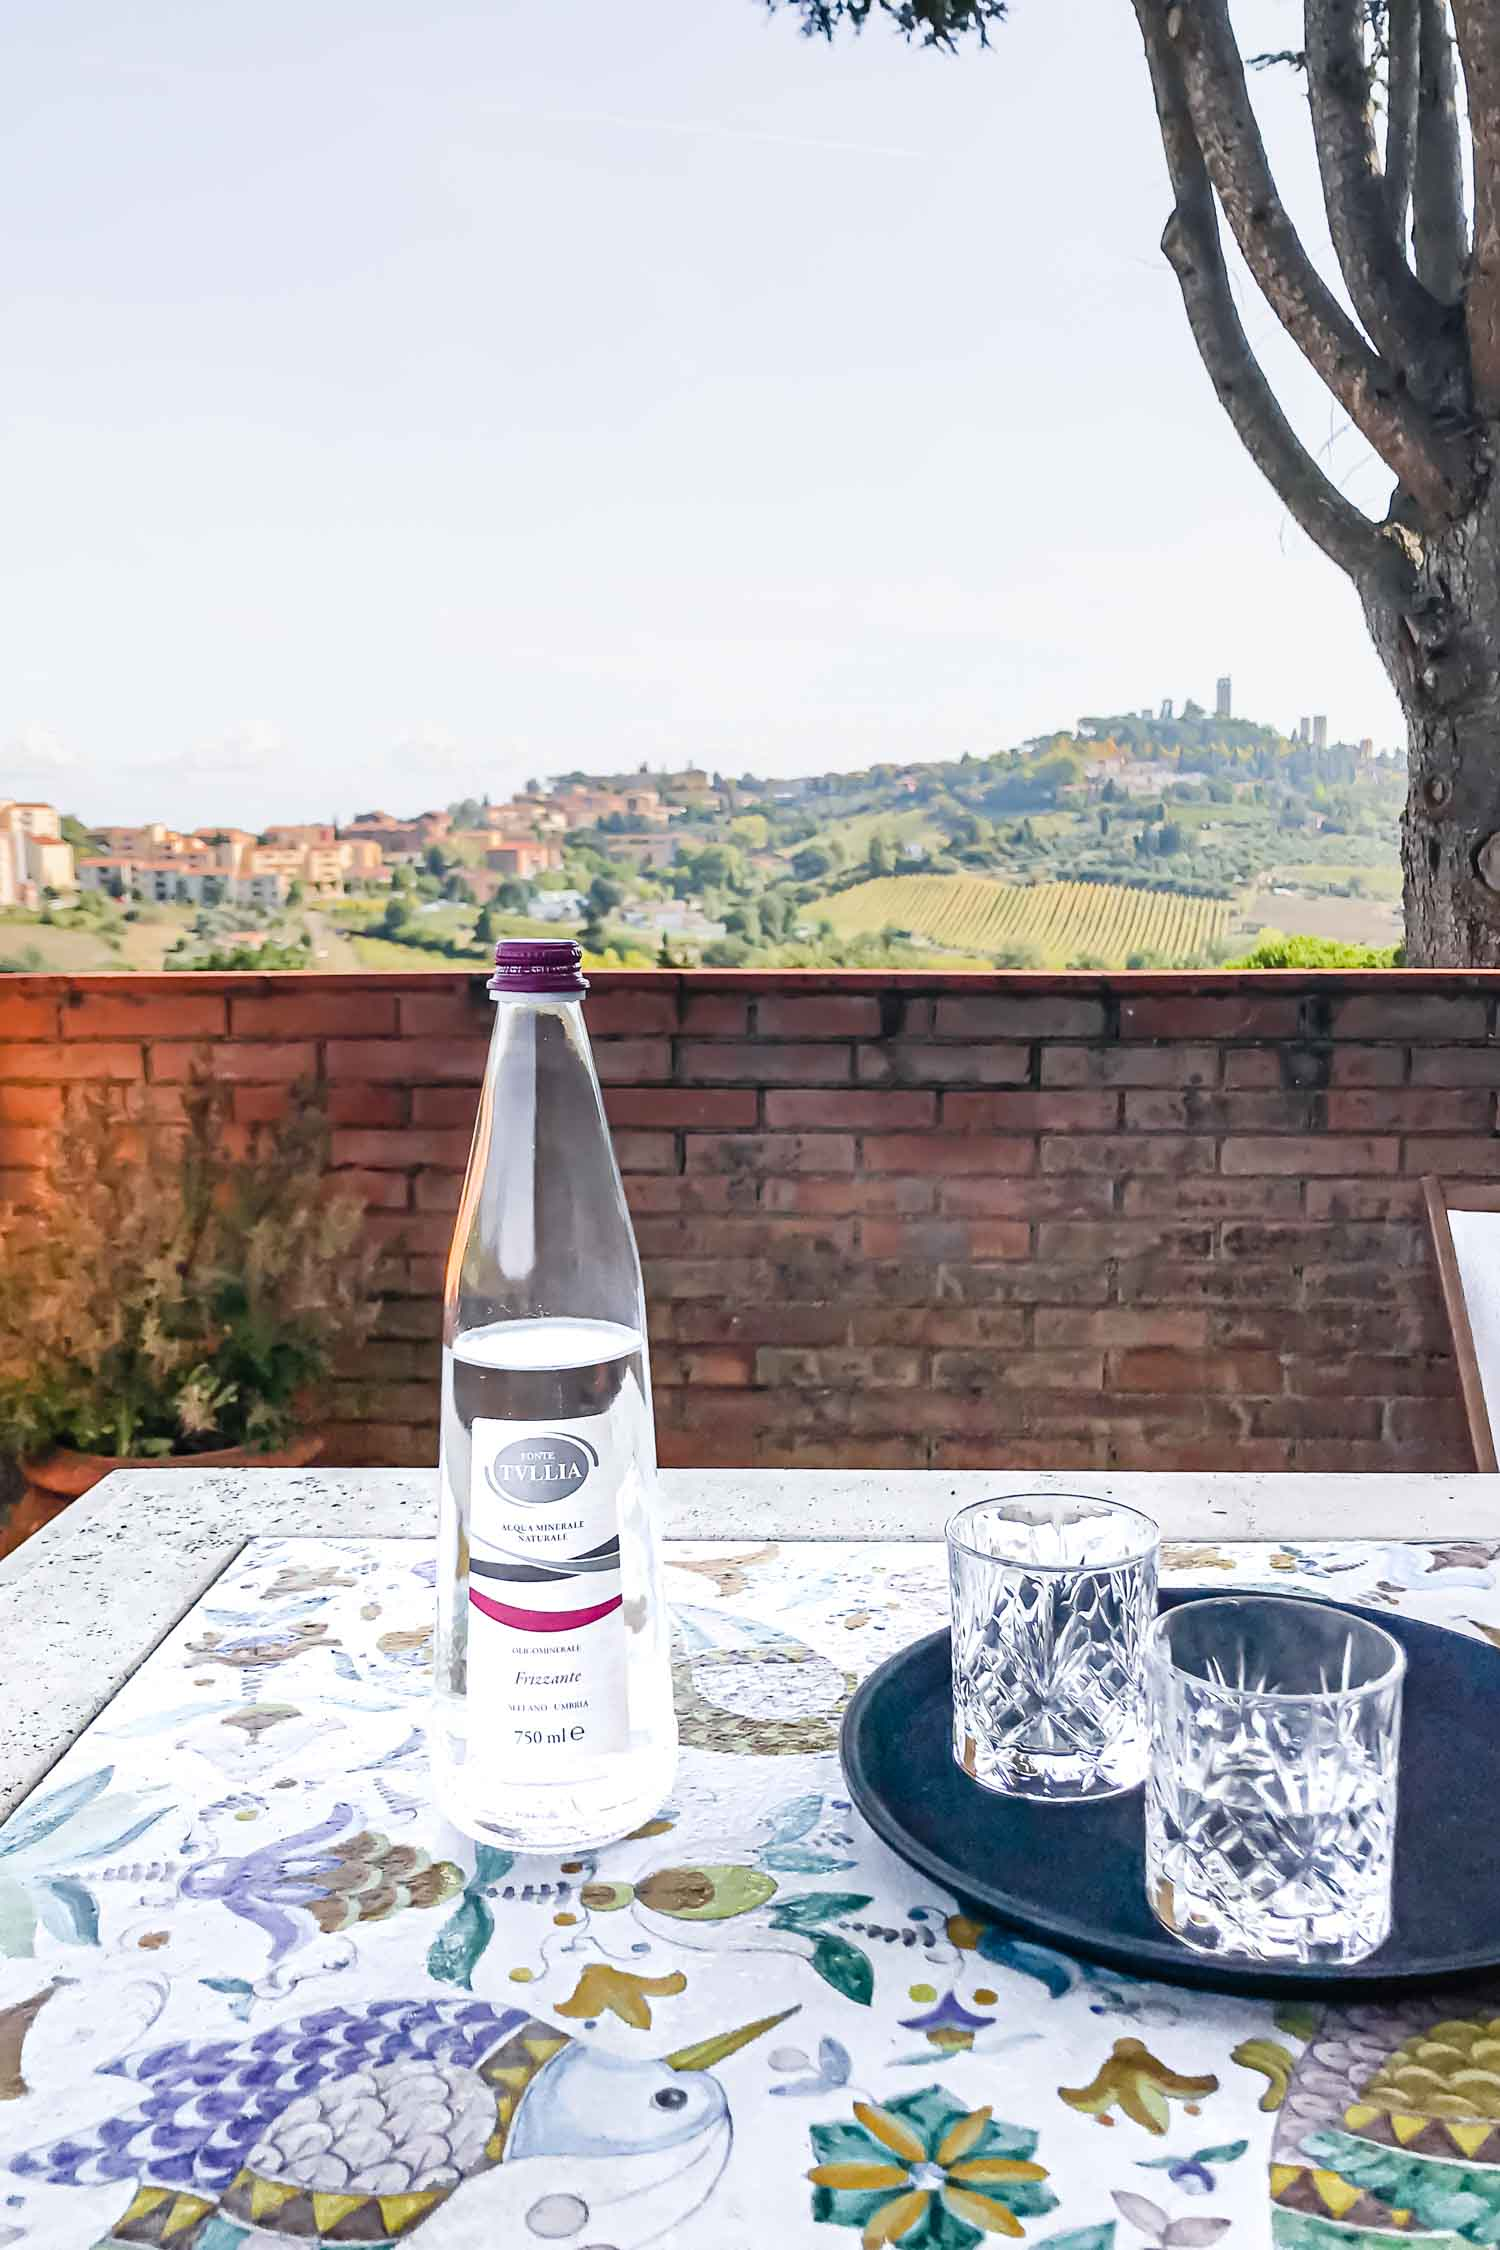 On the Loggia terrace at agrivilla i pini, overlooking the San Gimignano towers. i pini is a 100% organic vegan farm and restaurant retreat. #tuscany #travel #italy #italianfarmhouse #olivegroves #organicoliveoil #vineyards #italyinautumn #veganrestaurant #vegantravel #italytravel #veganitaly #vegantuscany #veganhotel #ecotourism #organichotel #veganhotel #veganretreat #veganbedandbreakfast #sangimignano